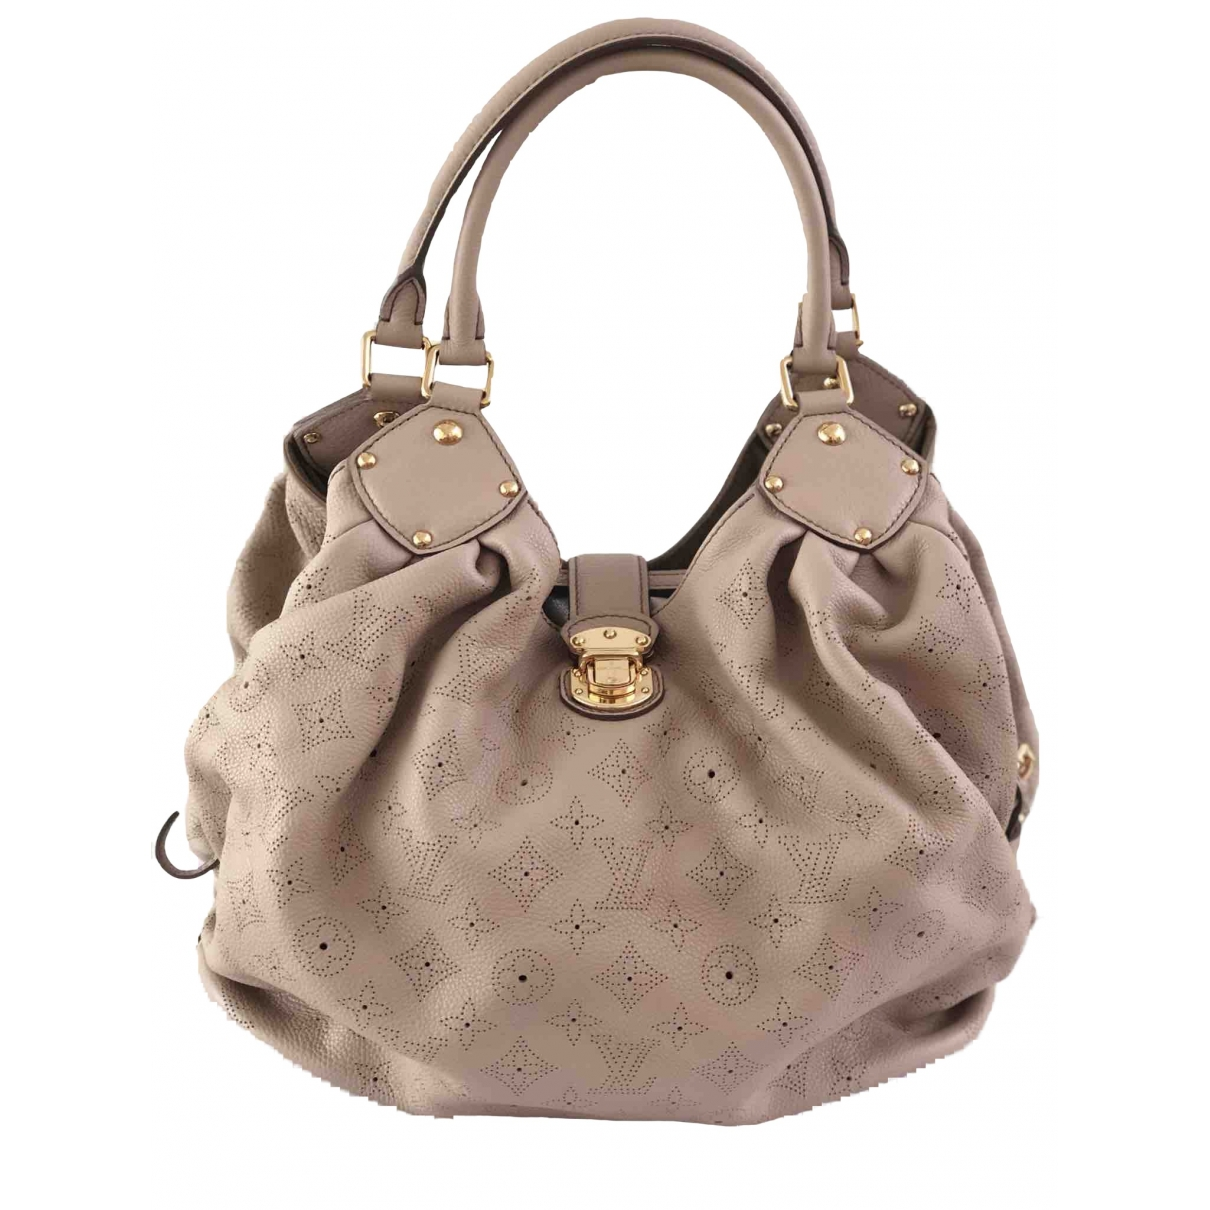 Louis Vuitton Mahina Beige Leather handbag for Women \N